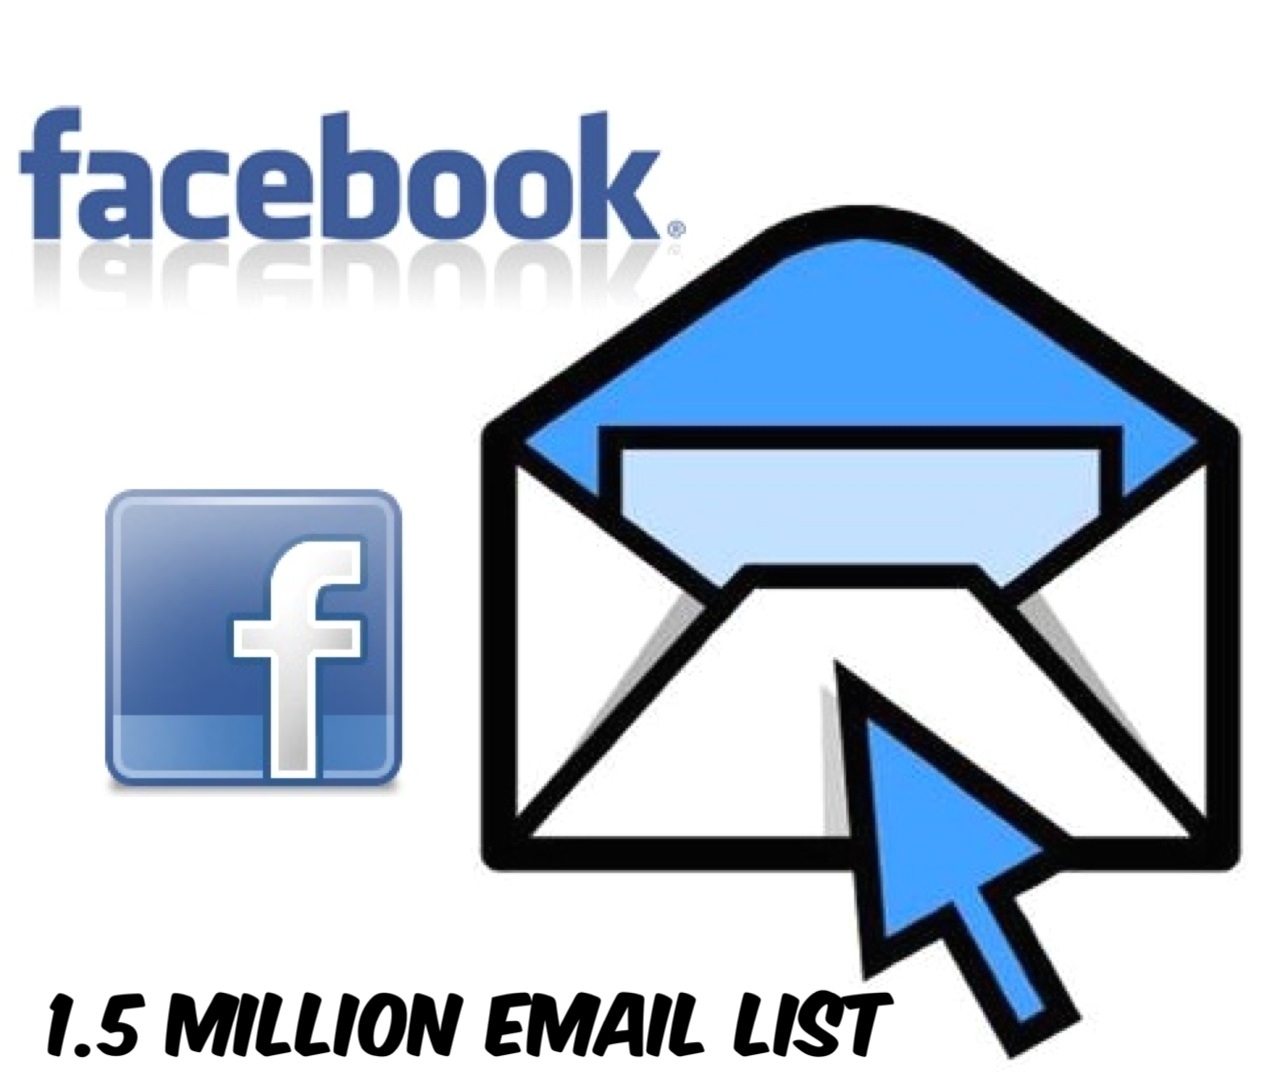 Give 1.5 Million Facebook Email List